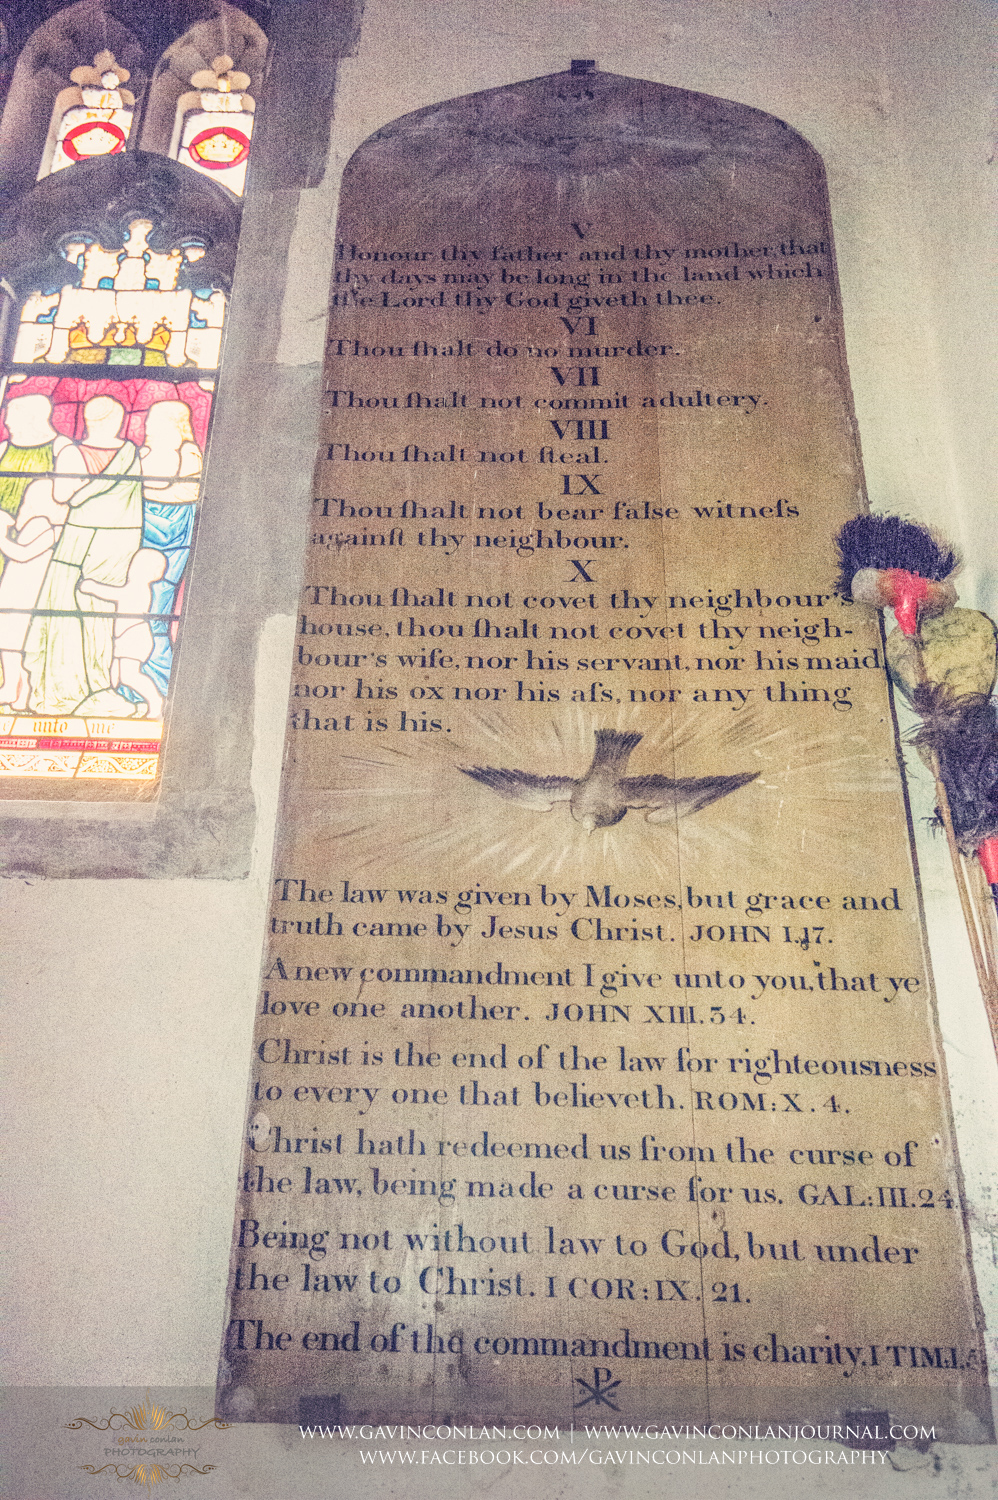 the ten commandments written on the wall in St Andrew and St Mary Parish Church in Grantchester, Cambridgeshire